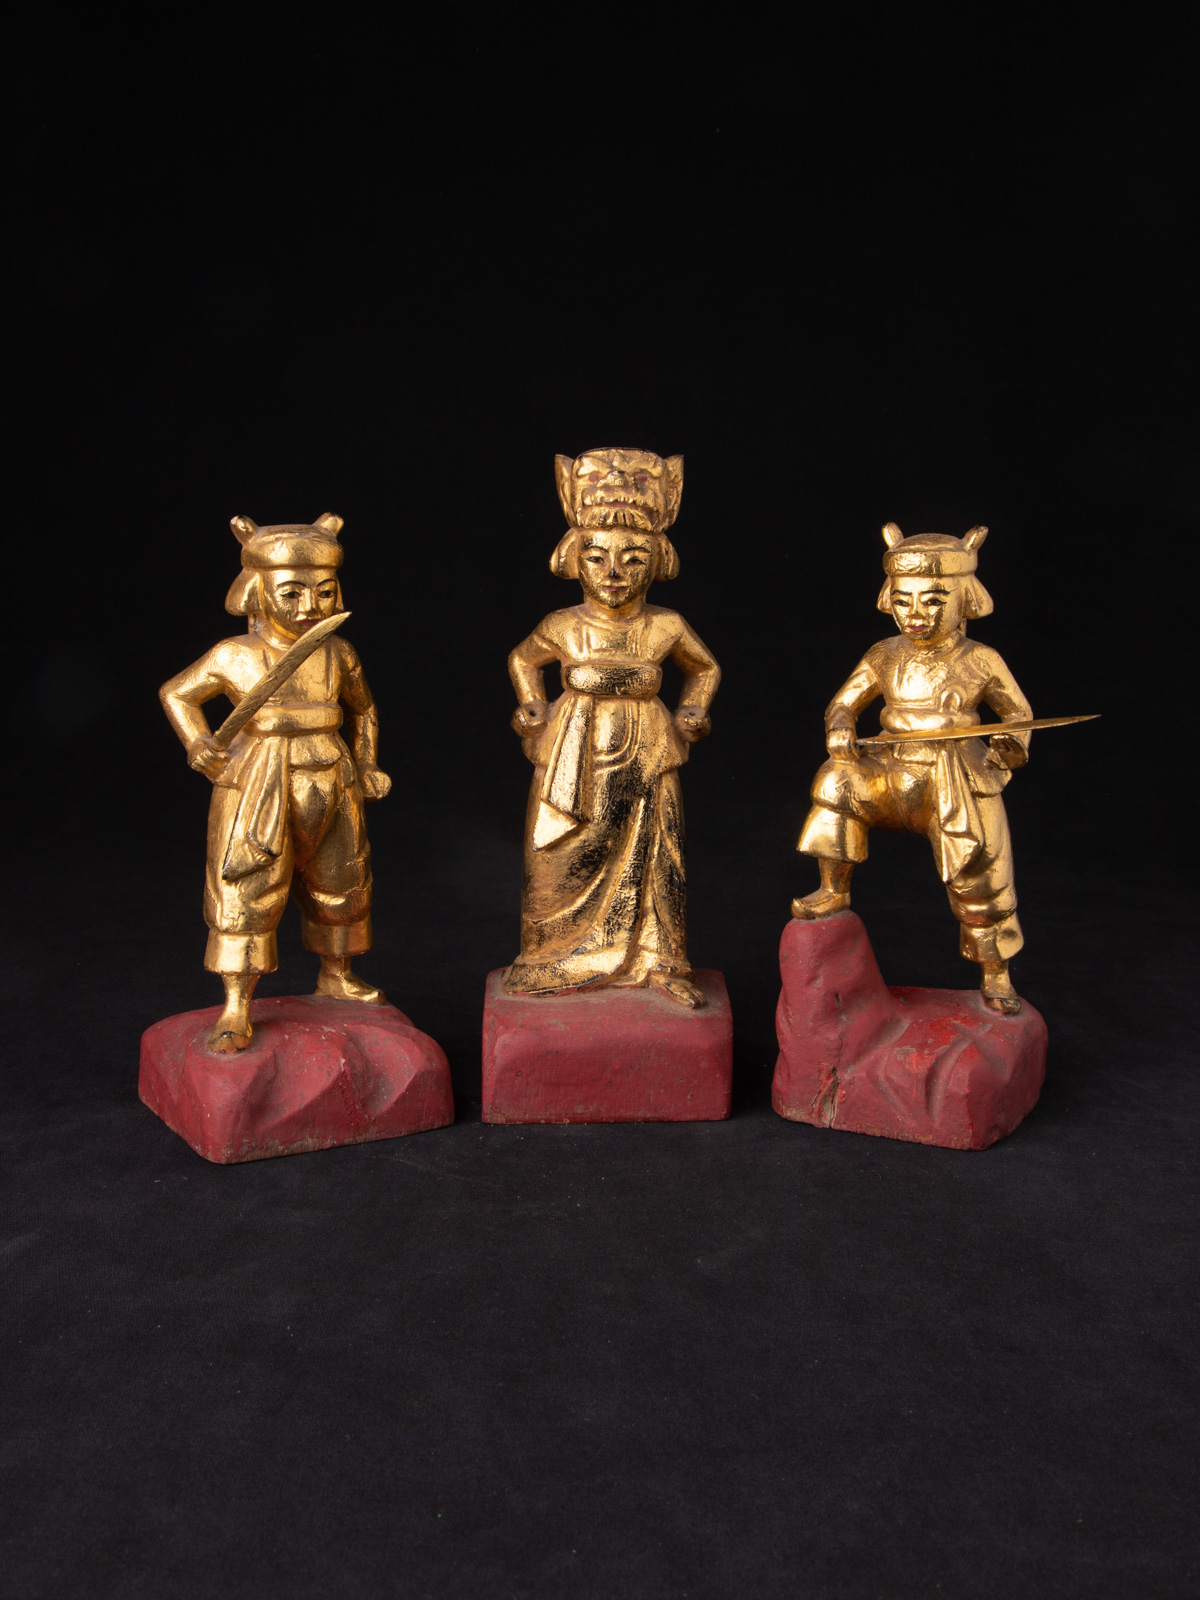 Antique pair of Burmese Nat statues from Burma